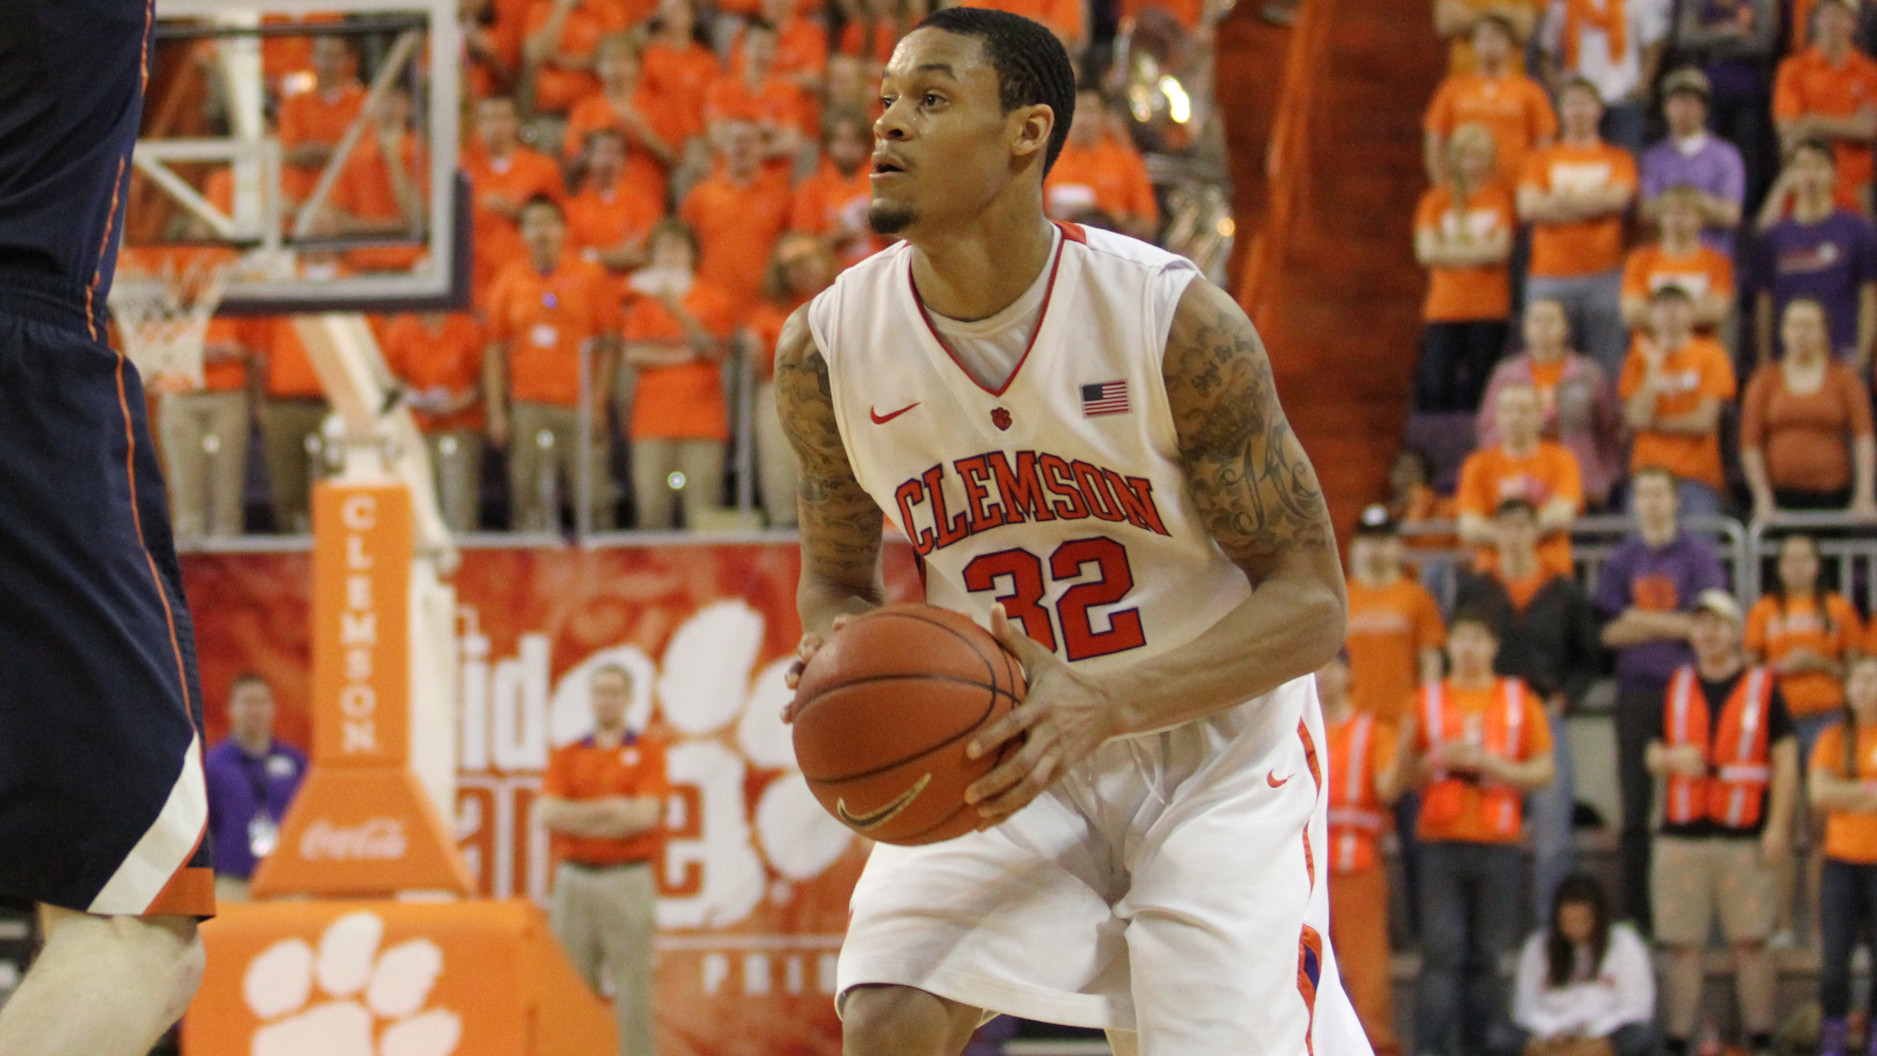 McDaniels? Late Free Throws Preserve 63-60 Clemson Win over Georgia Tech